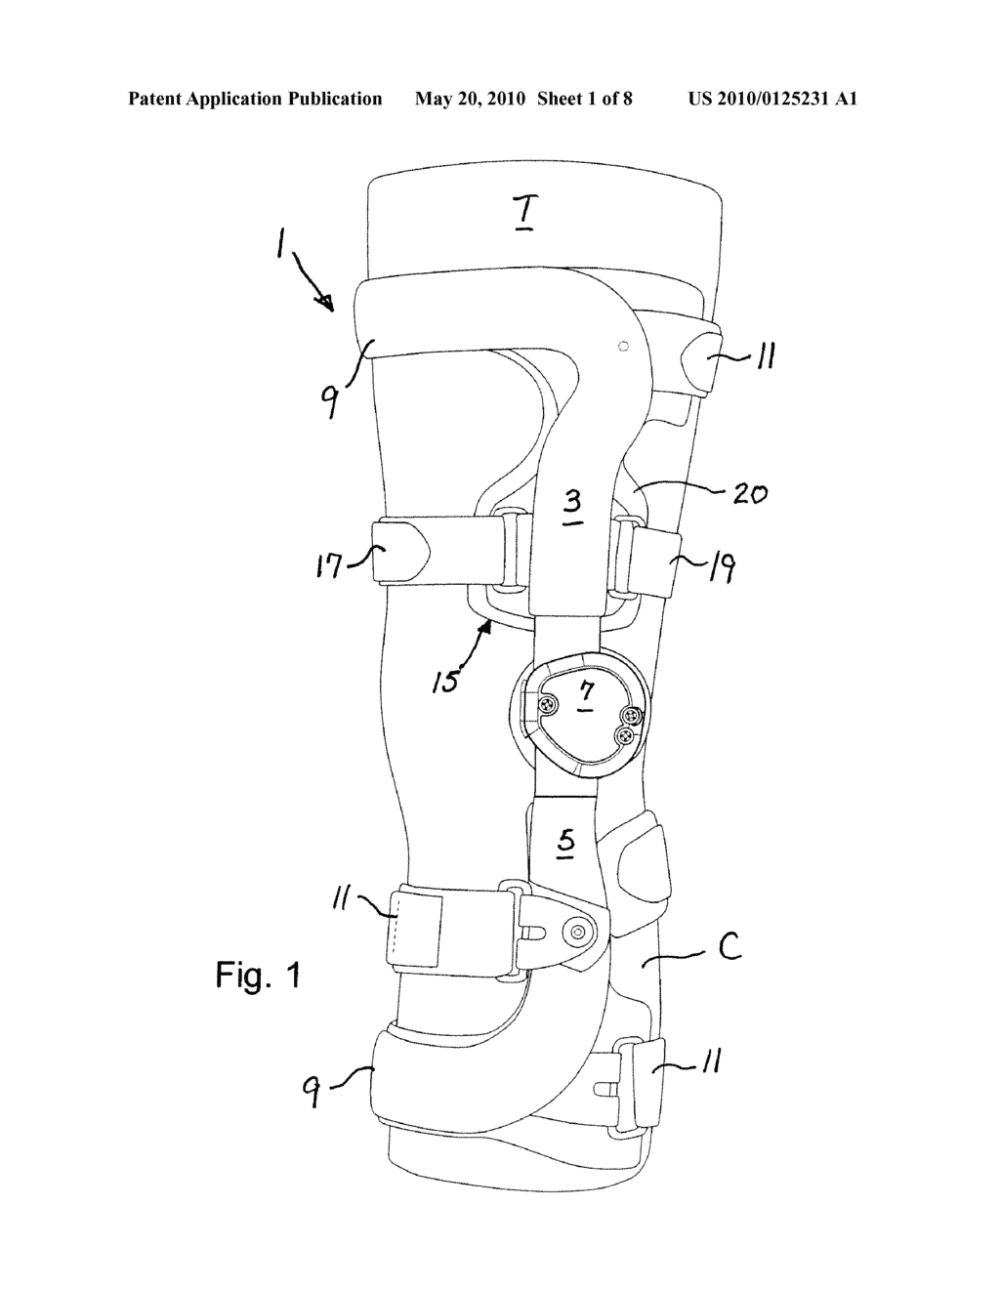 medium resolution of compression suspension strap assembly and knee brace equipped therewith diagram schematic and image 02